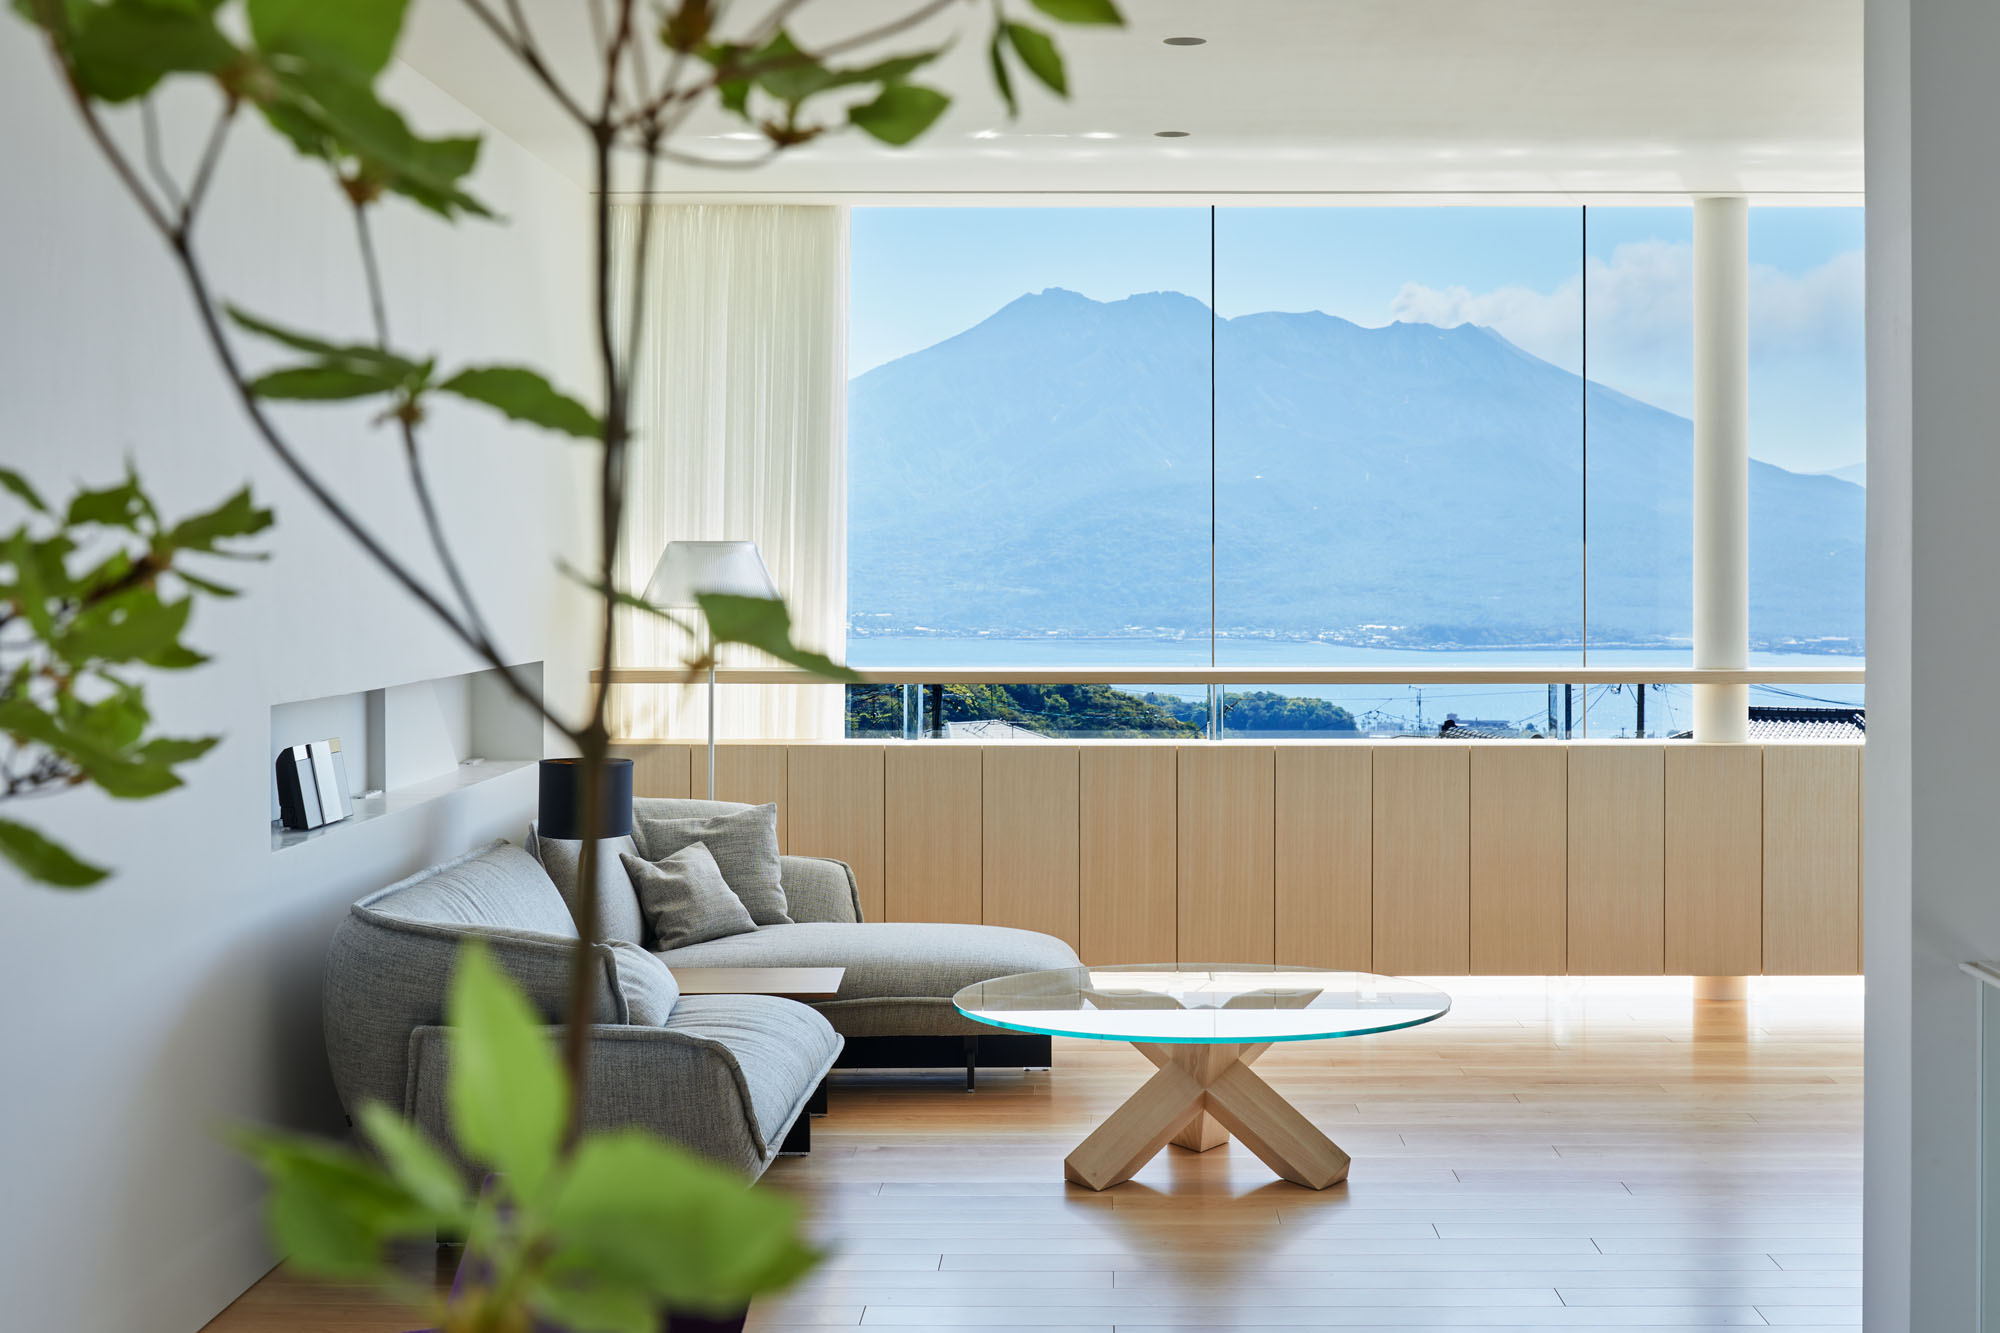 The view house of Sakurajima